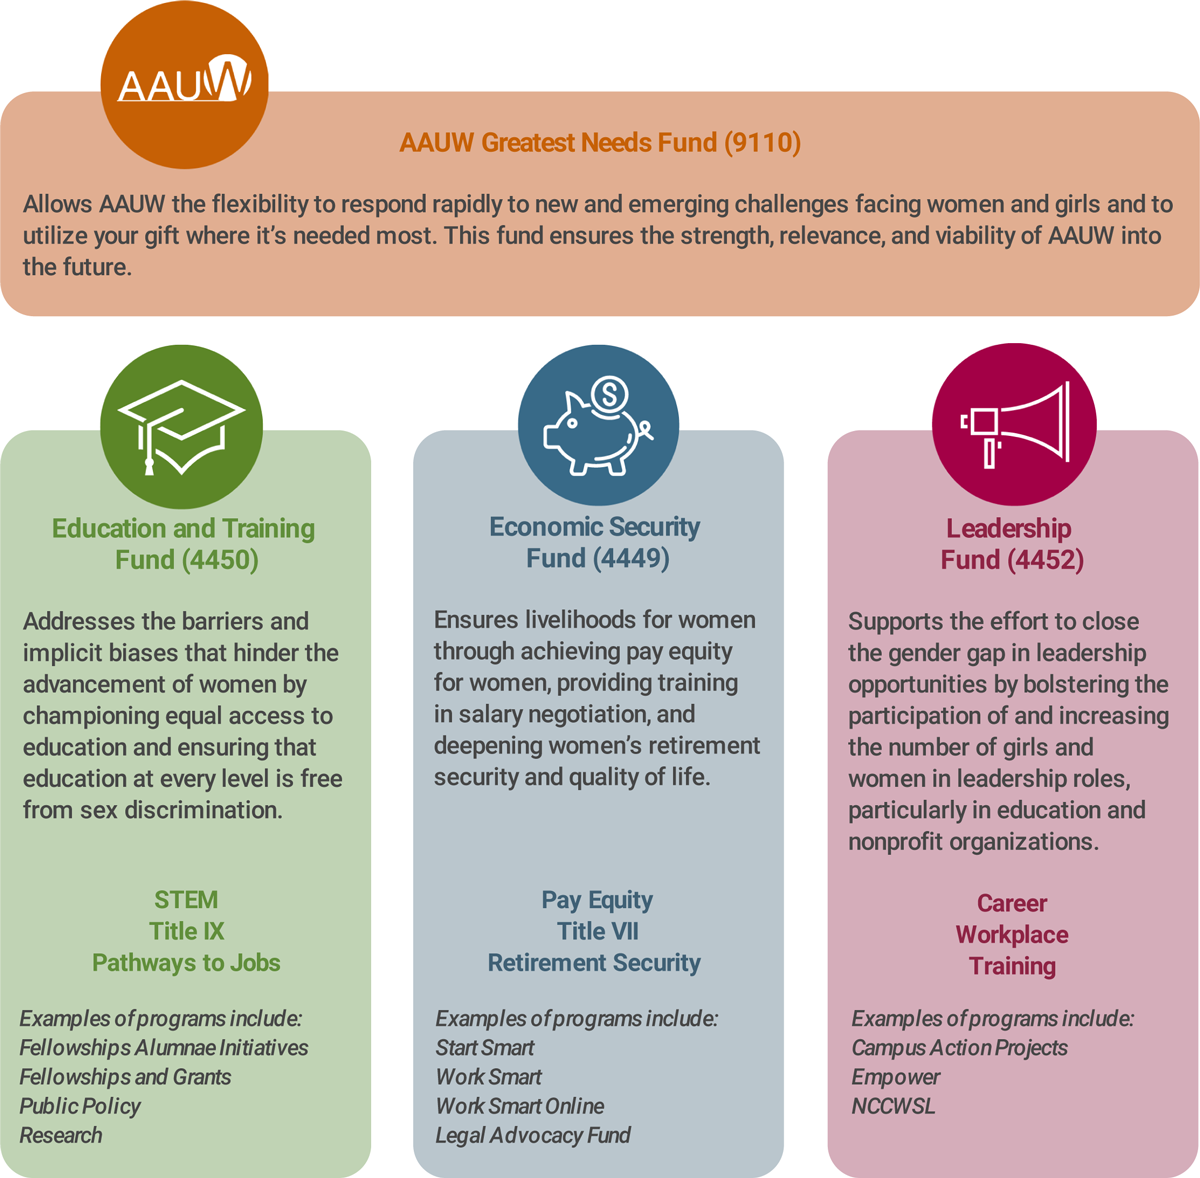 AAUW Funds Chart: AAUW Greatest Needs Find (9110), Education and Training Fund (4450), Economic Security Fund (4449), and the Leadership Fund (4452).